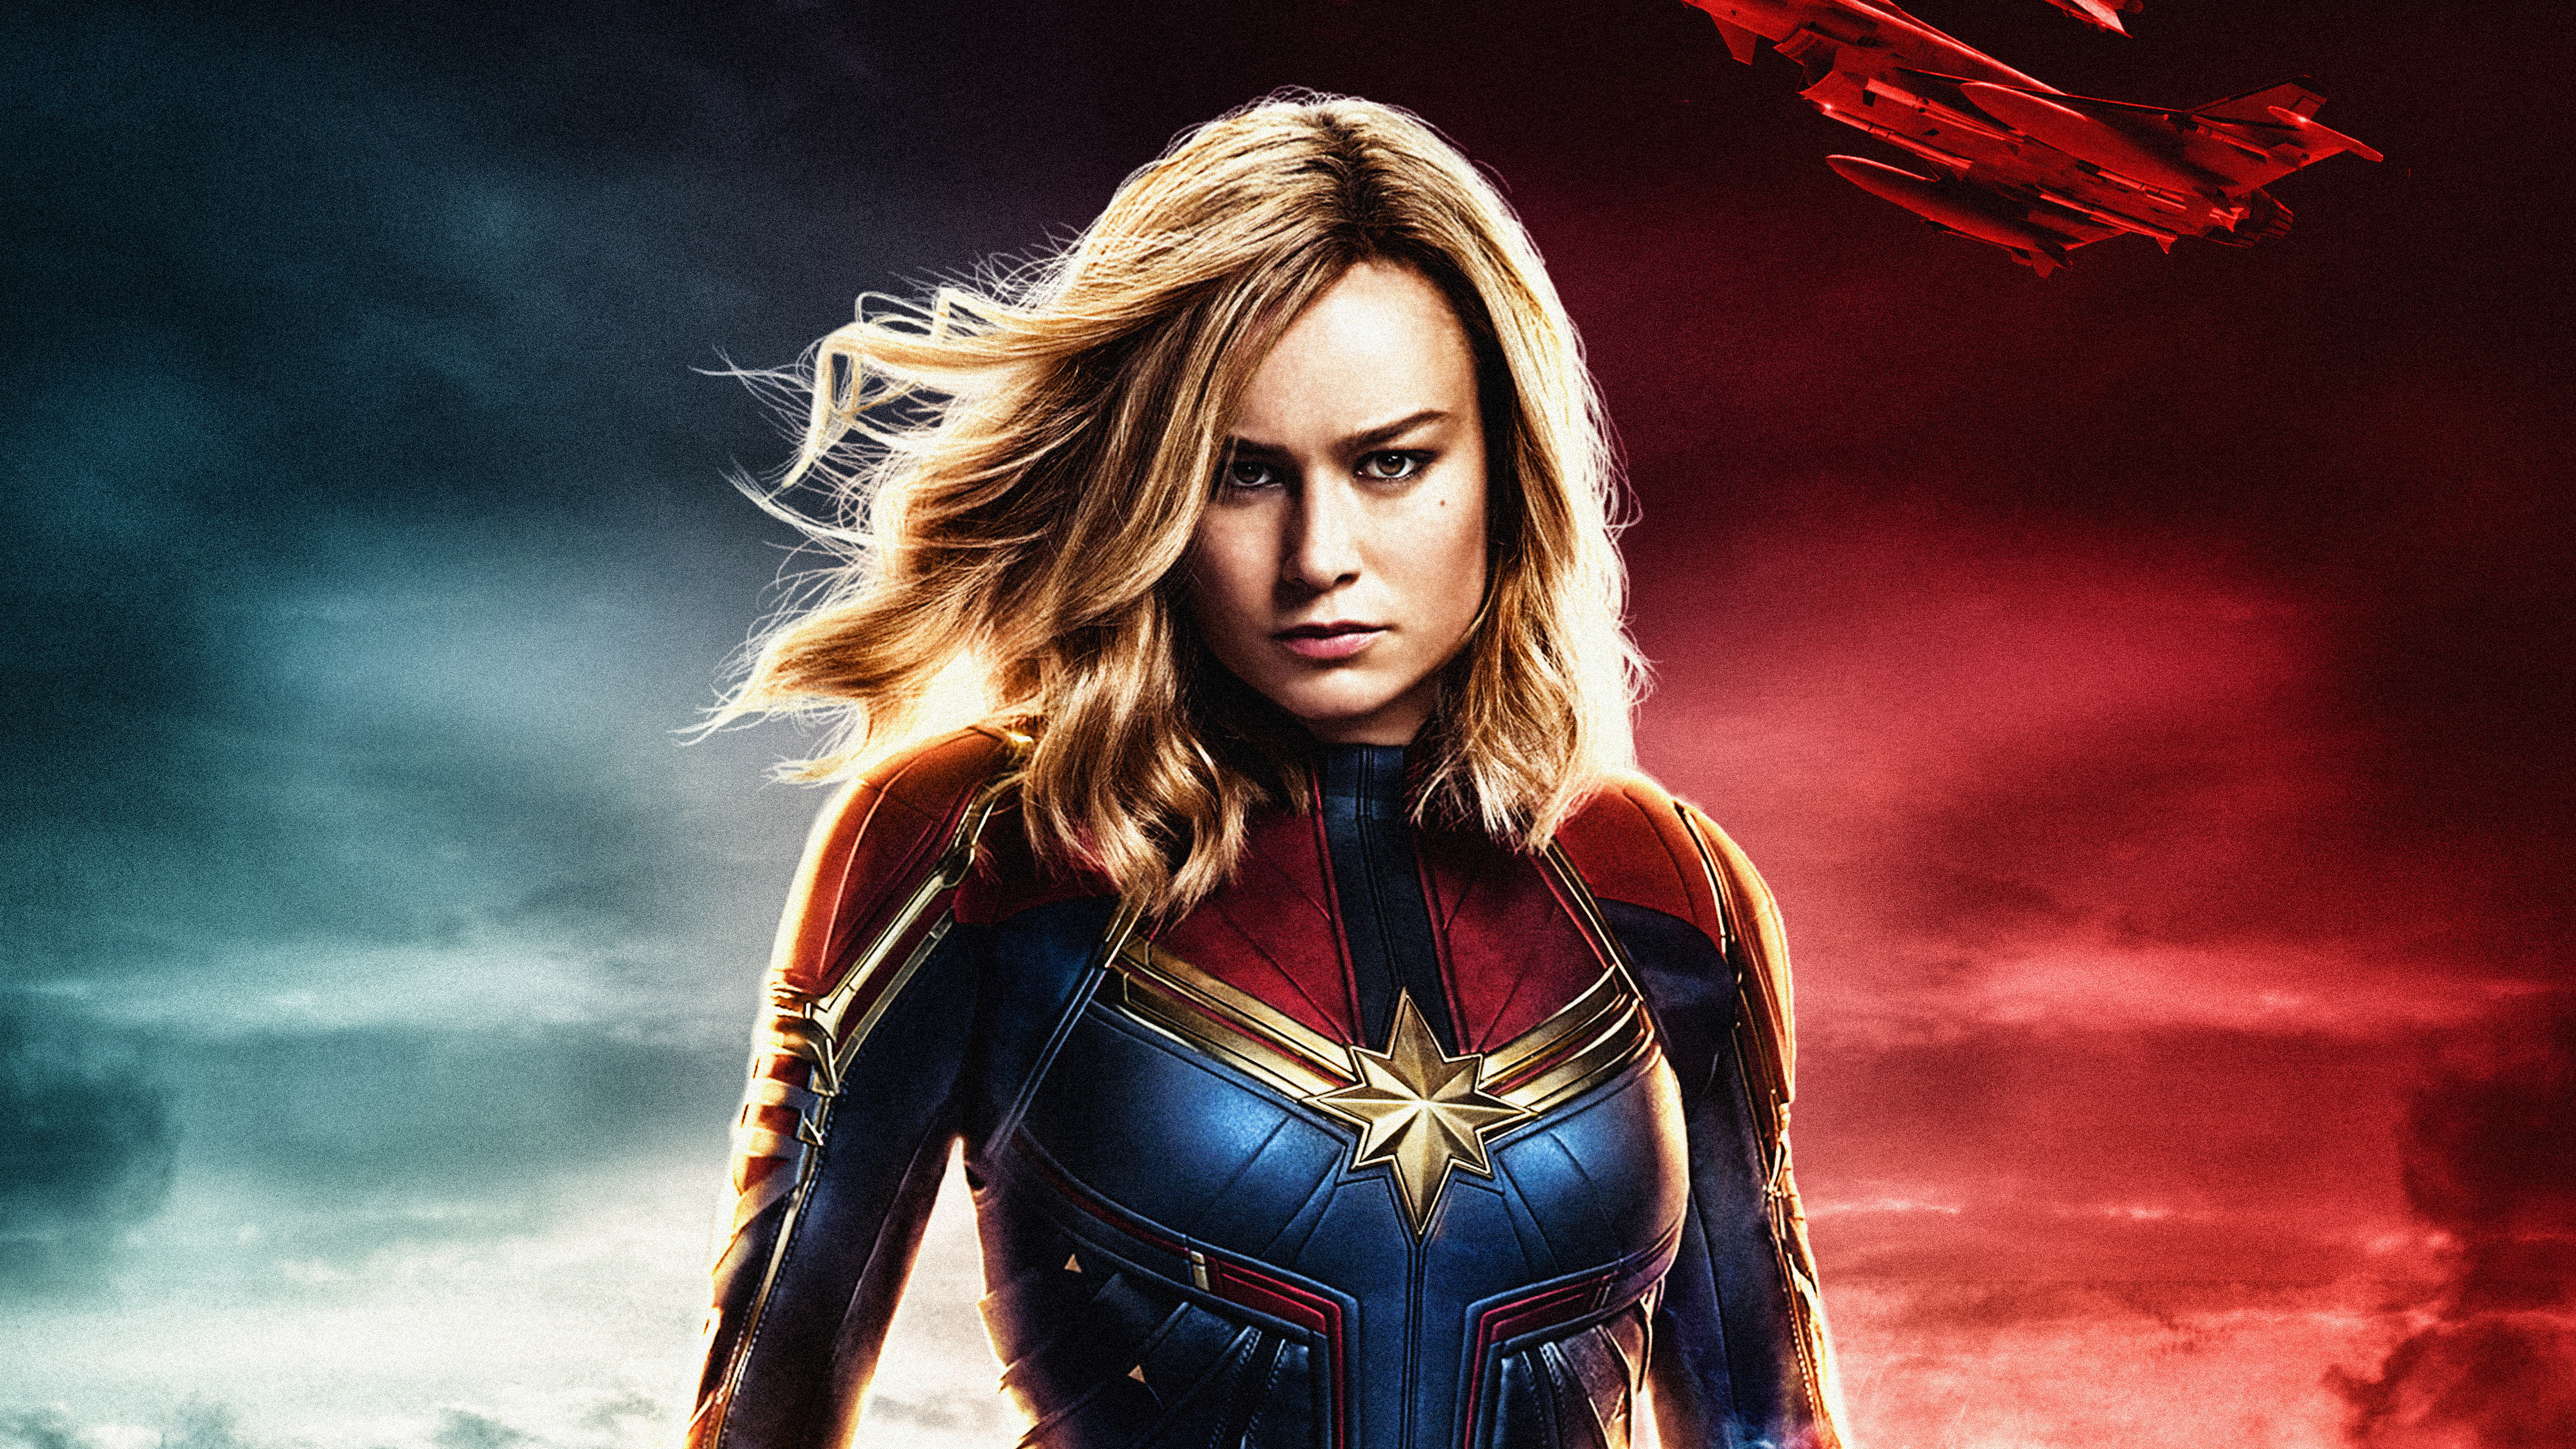 Captain Marvel Movie 2018 5k Hd Movies 4k Wallpapers Images